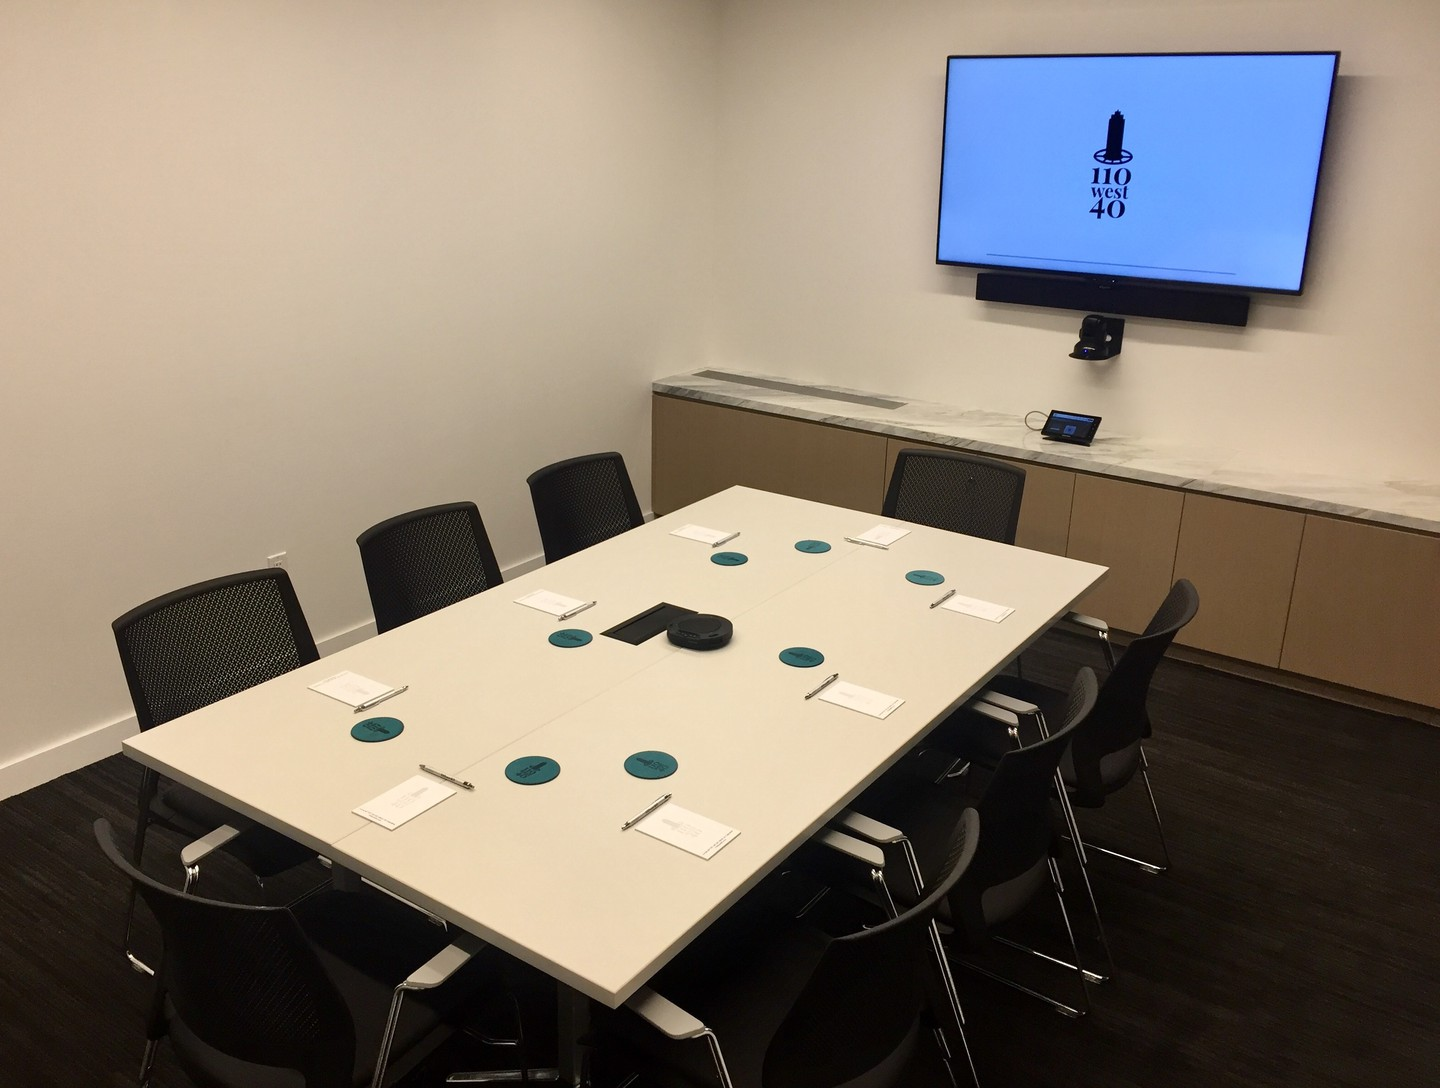 NYC  Meetingraum 110west40 Conference Room C image 2